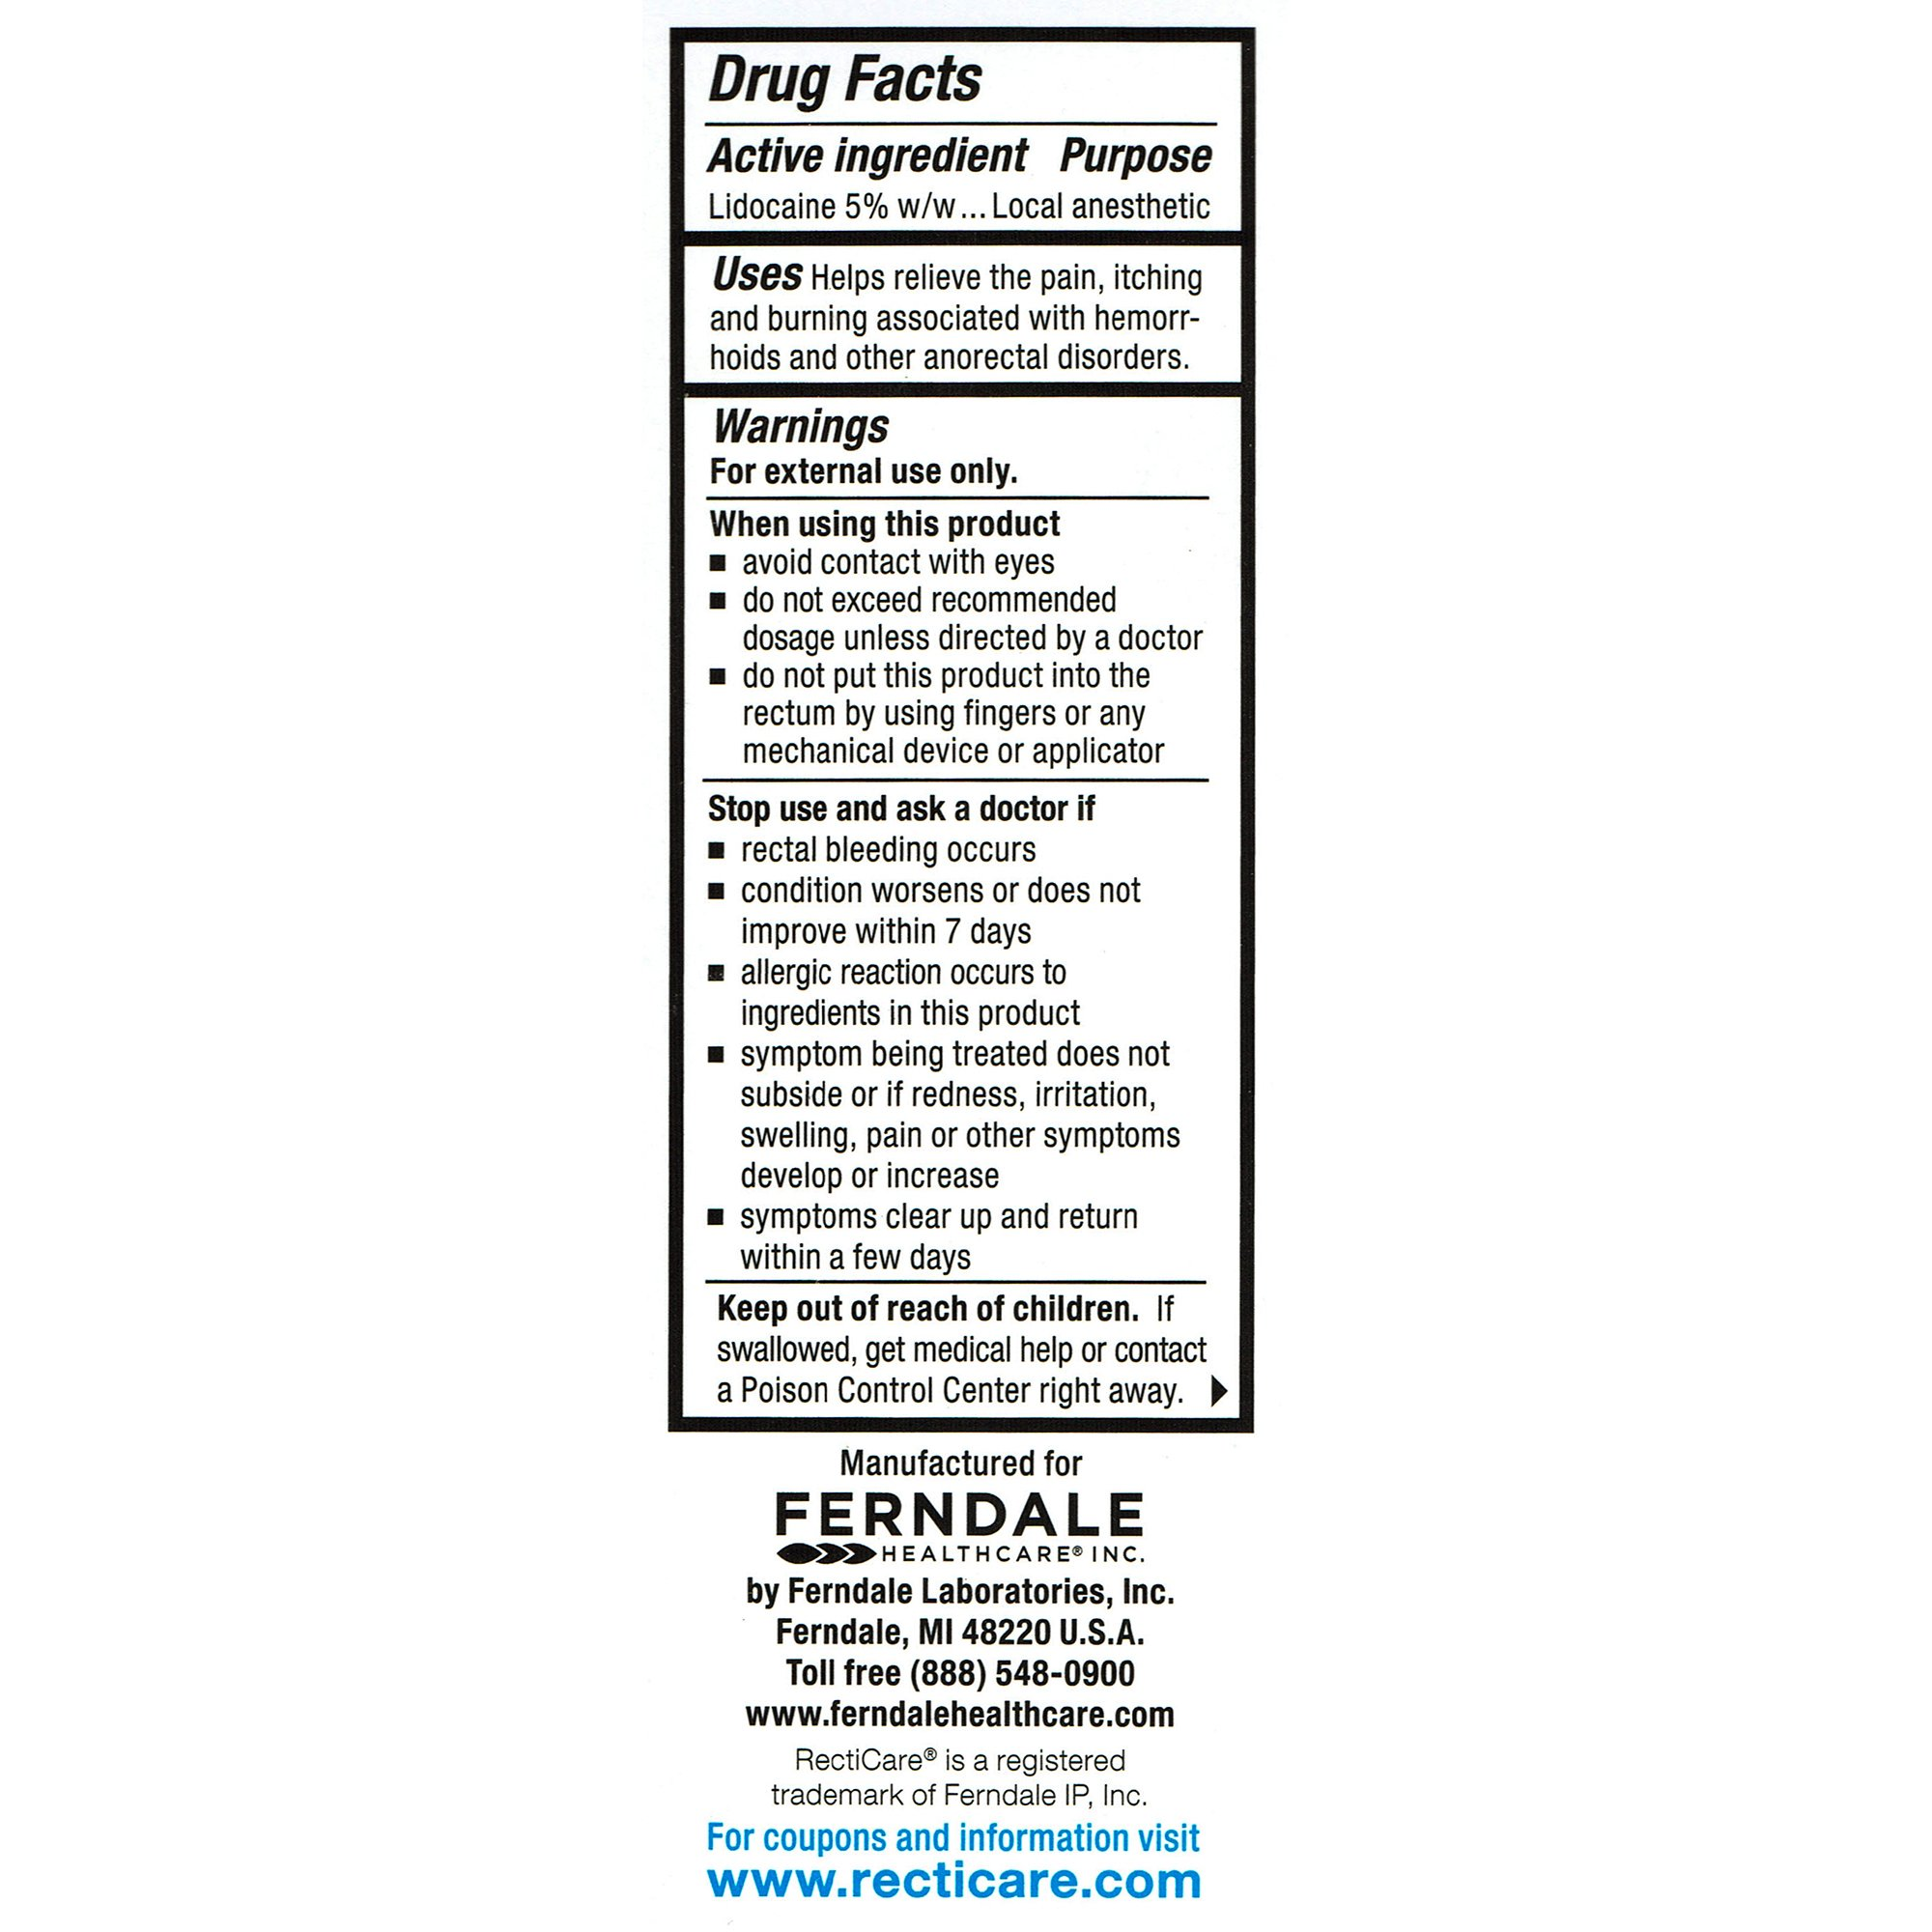 RectiCare Anorectal Lidocaine 5% Cream: Treatment for Hemorrhoids & Other Anorectal Disorders - 15g Tube by Recticare (Image #3)